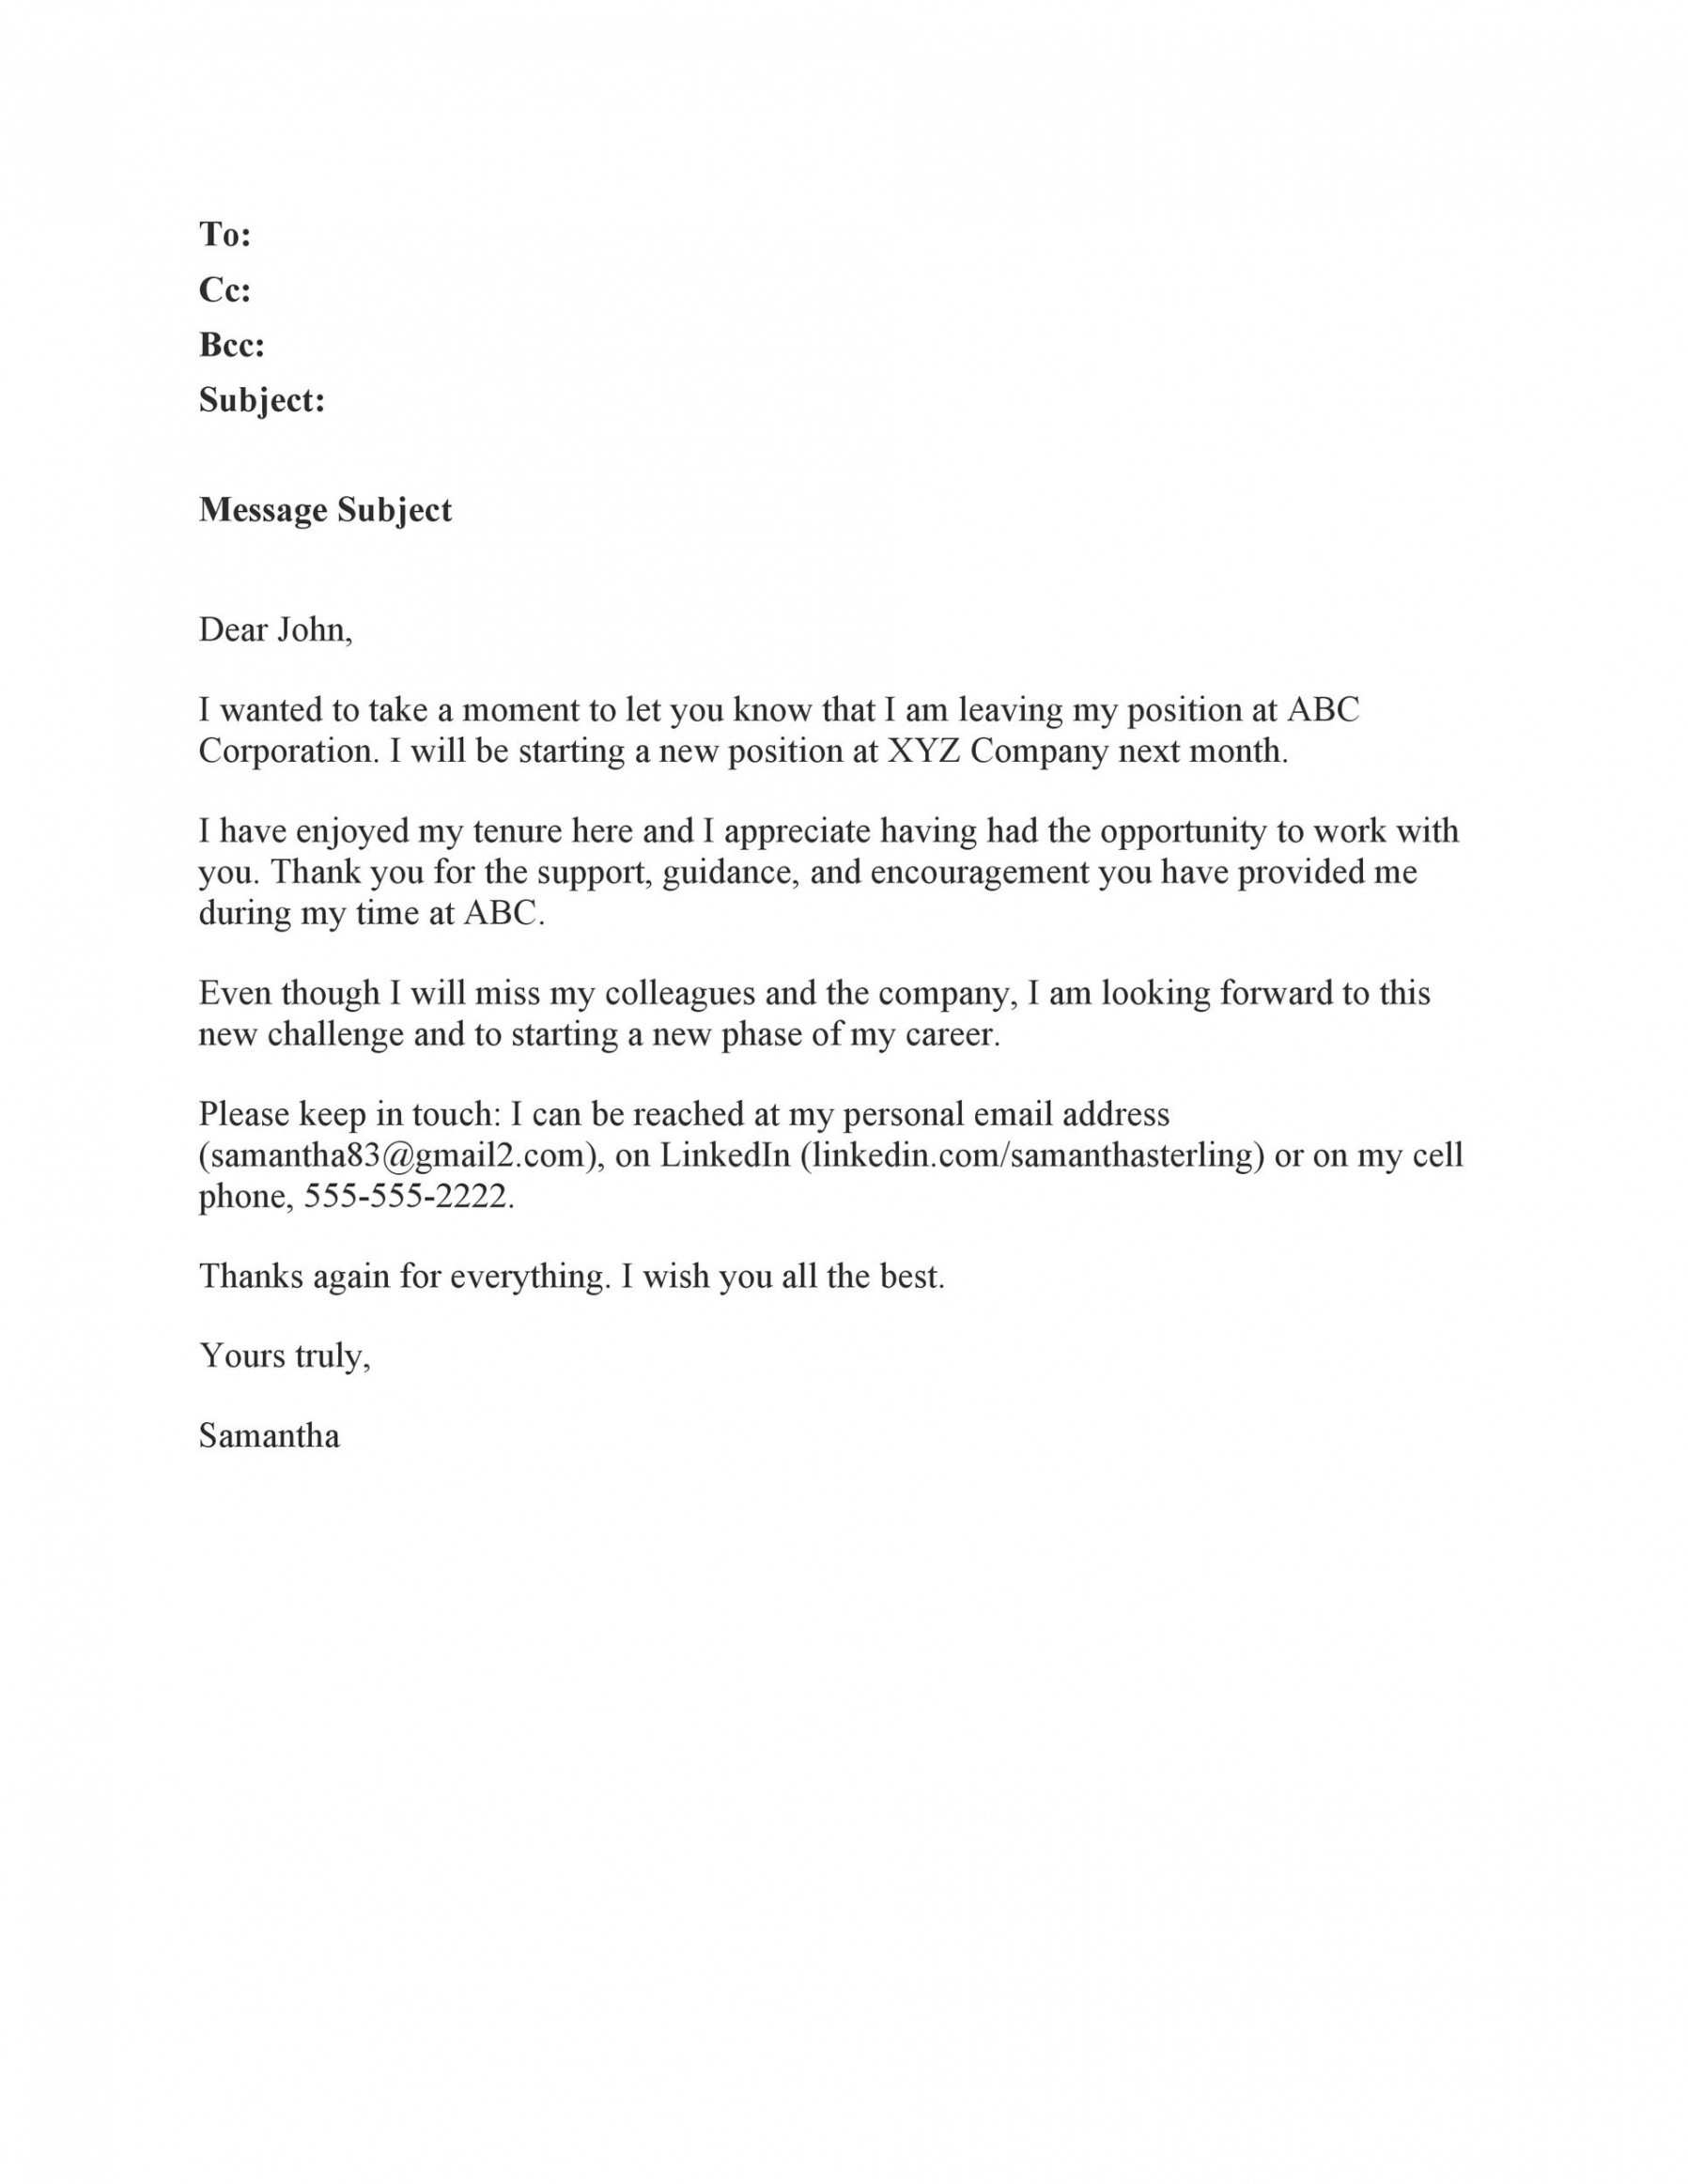 costum office closed email template doc sample